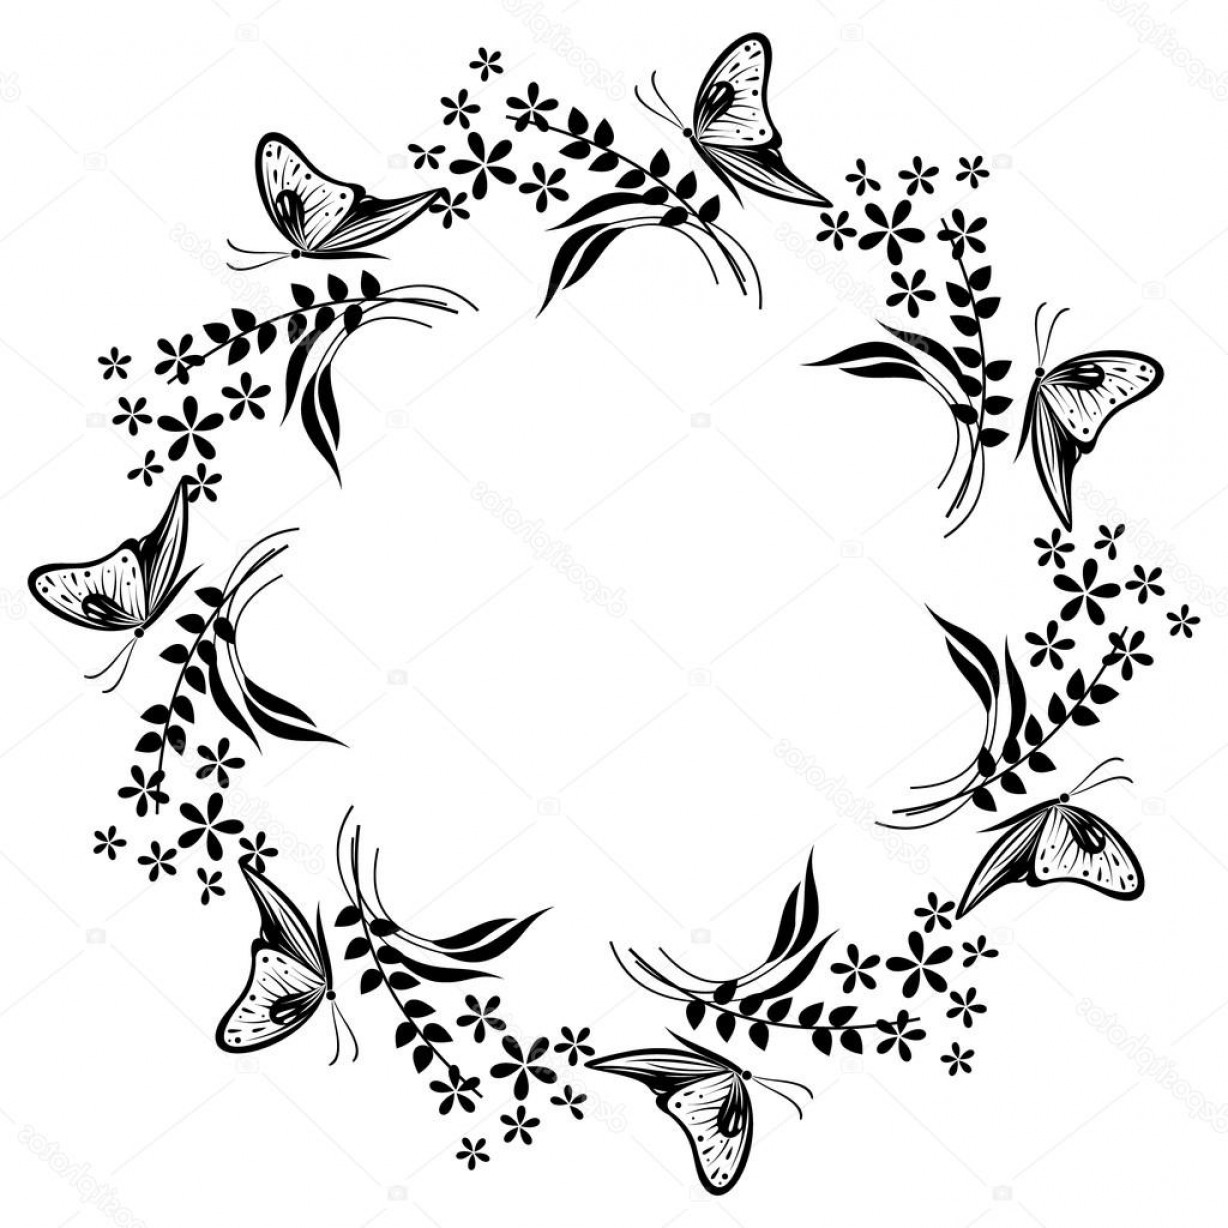 Butter Fly And Flower Vector Black And White: Stock Illustration Floral Frame With Insects Black